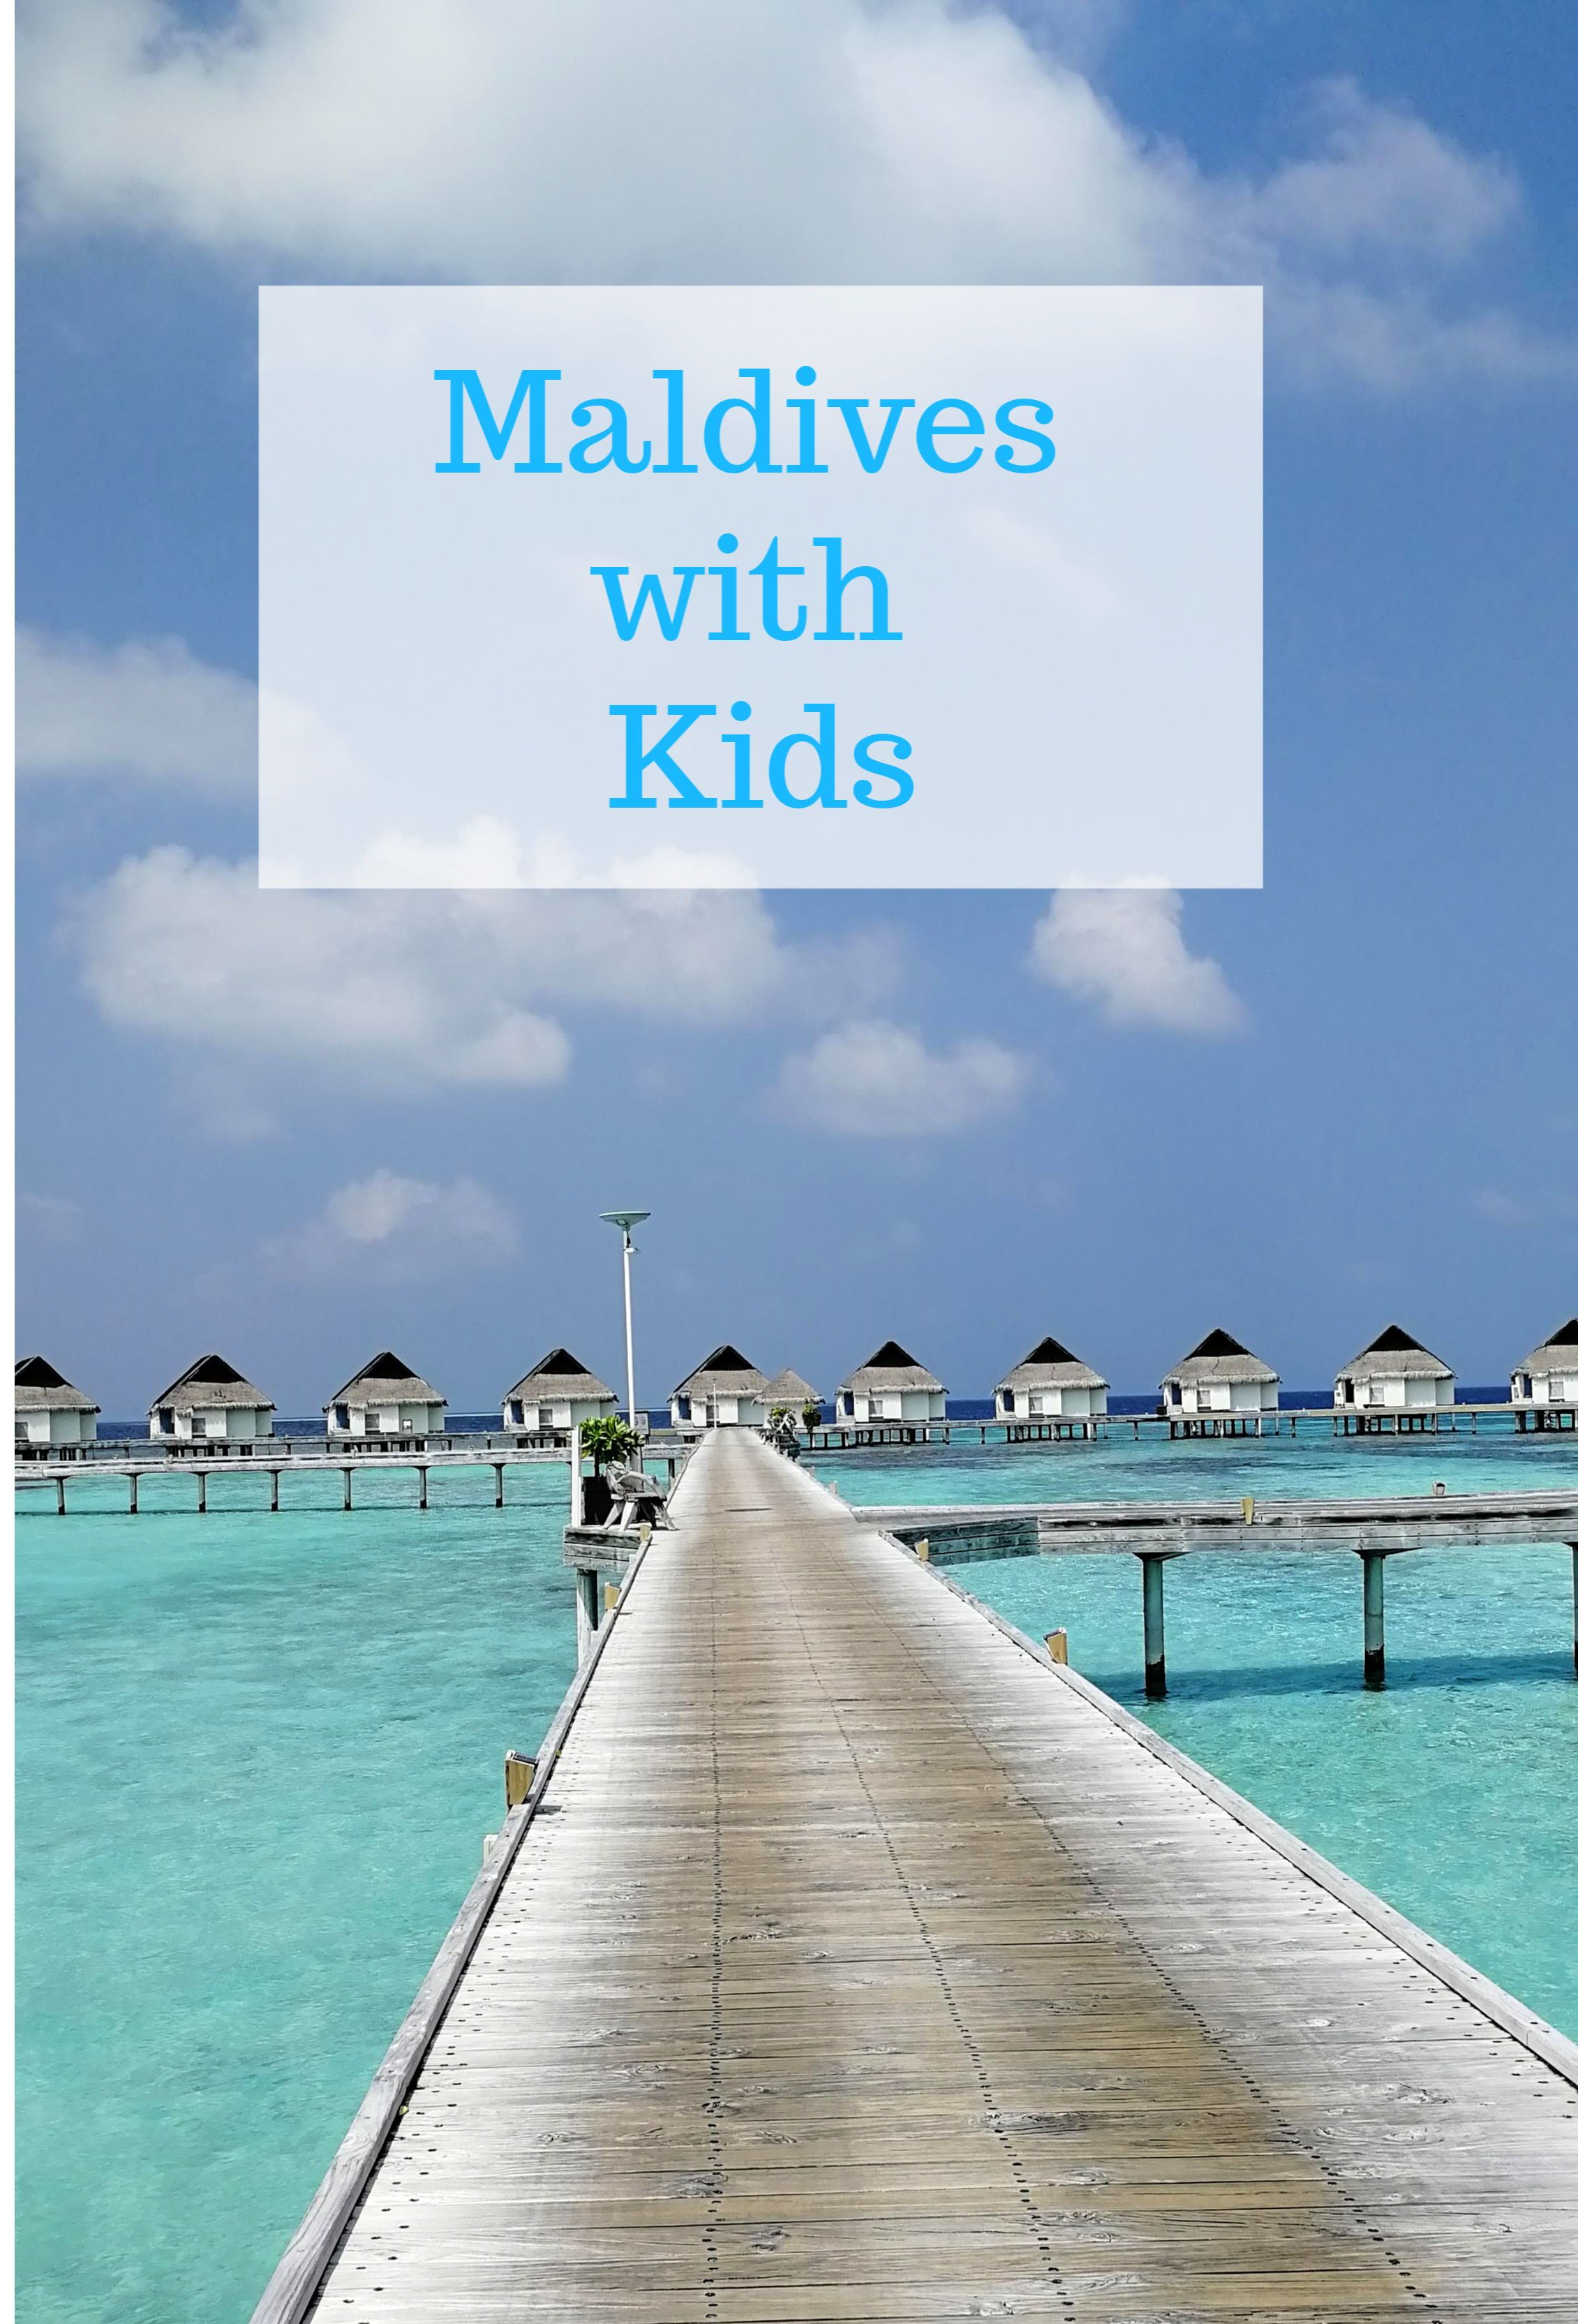 MALDIVES WITH KIDS is part of Maldives family holiday, Maldives, Best resorts in maldives, Travel impressions, Maldives resort, Beautiful places to travel - Maldives with Kids  Review of Centara Grand Island Resort & Spa  Sharks, snorkelling, beachside luxury villa, luxury family holiday